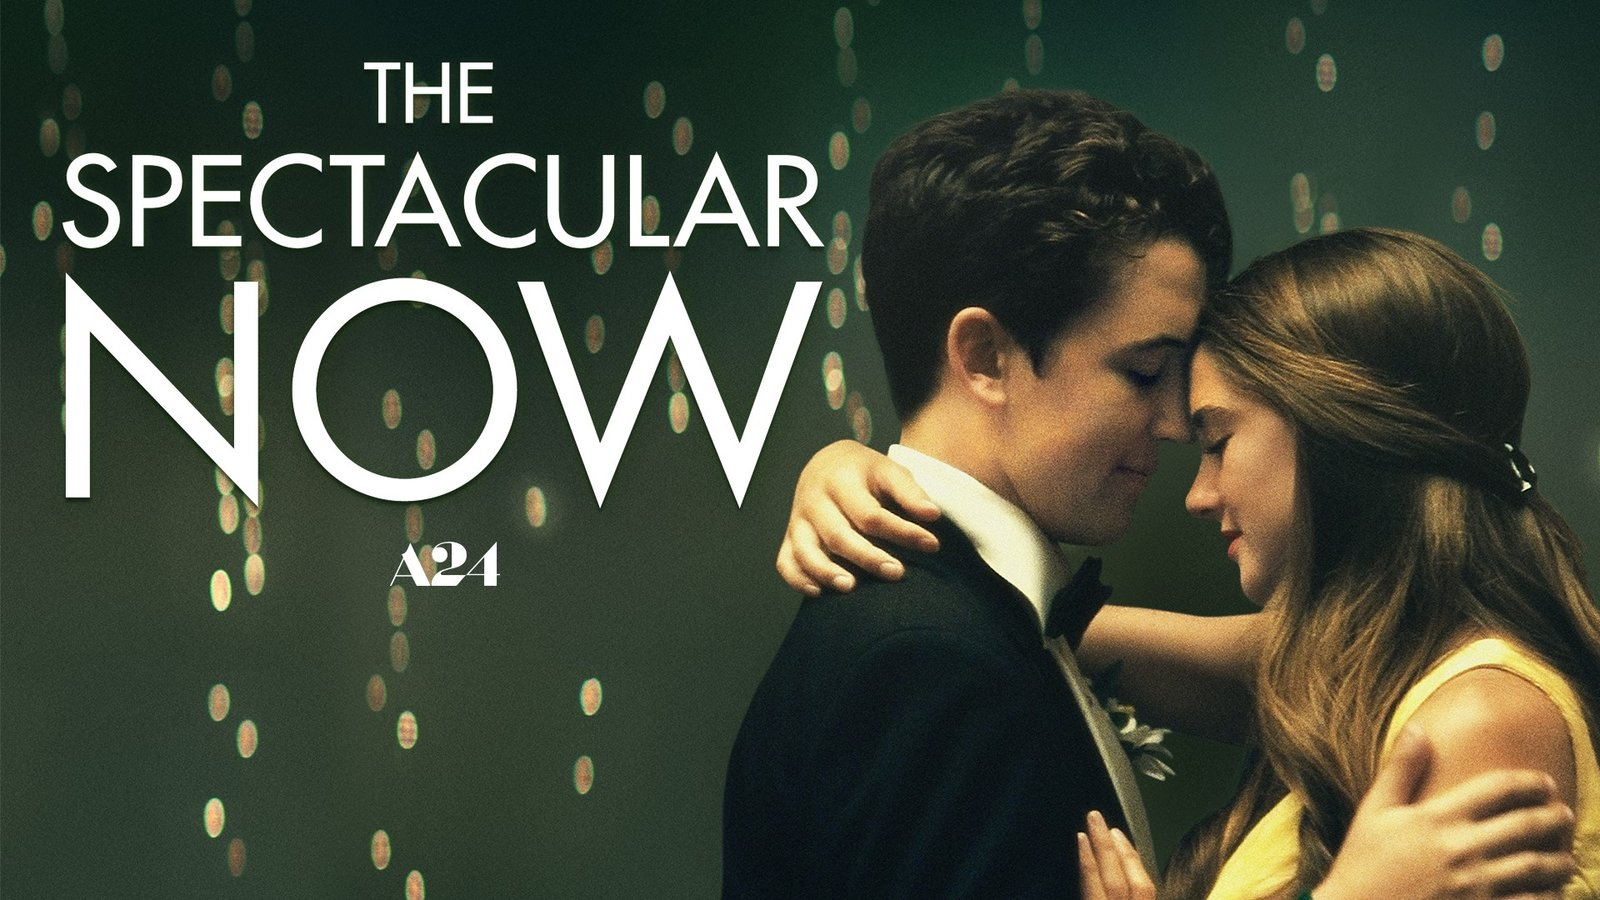 the spectacular now stream online free